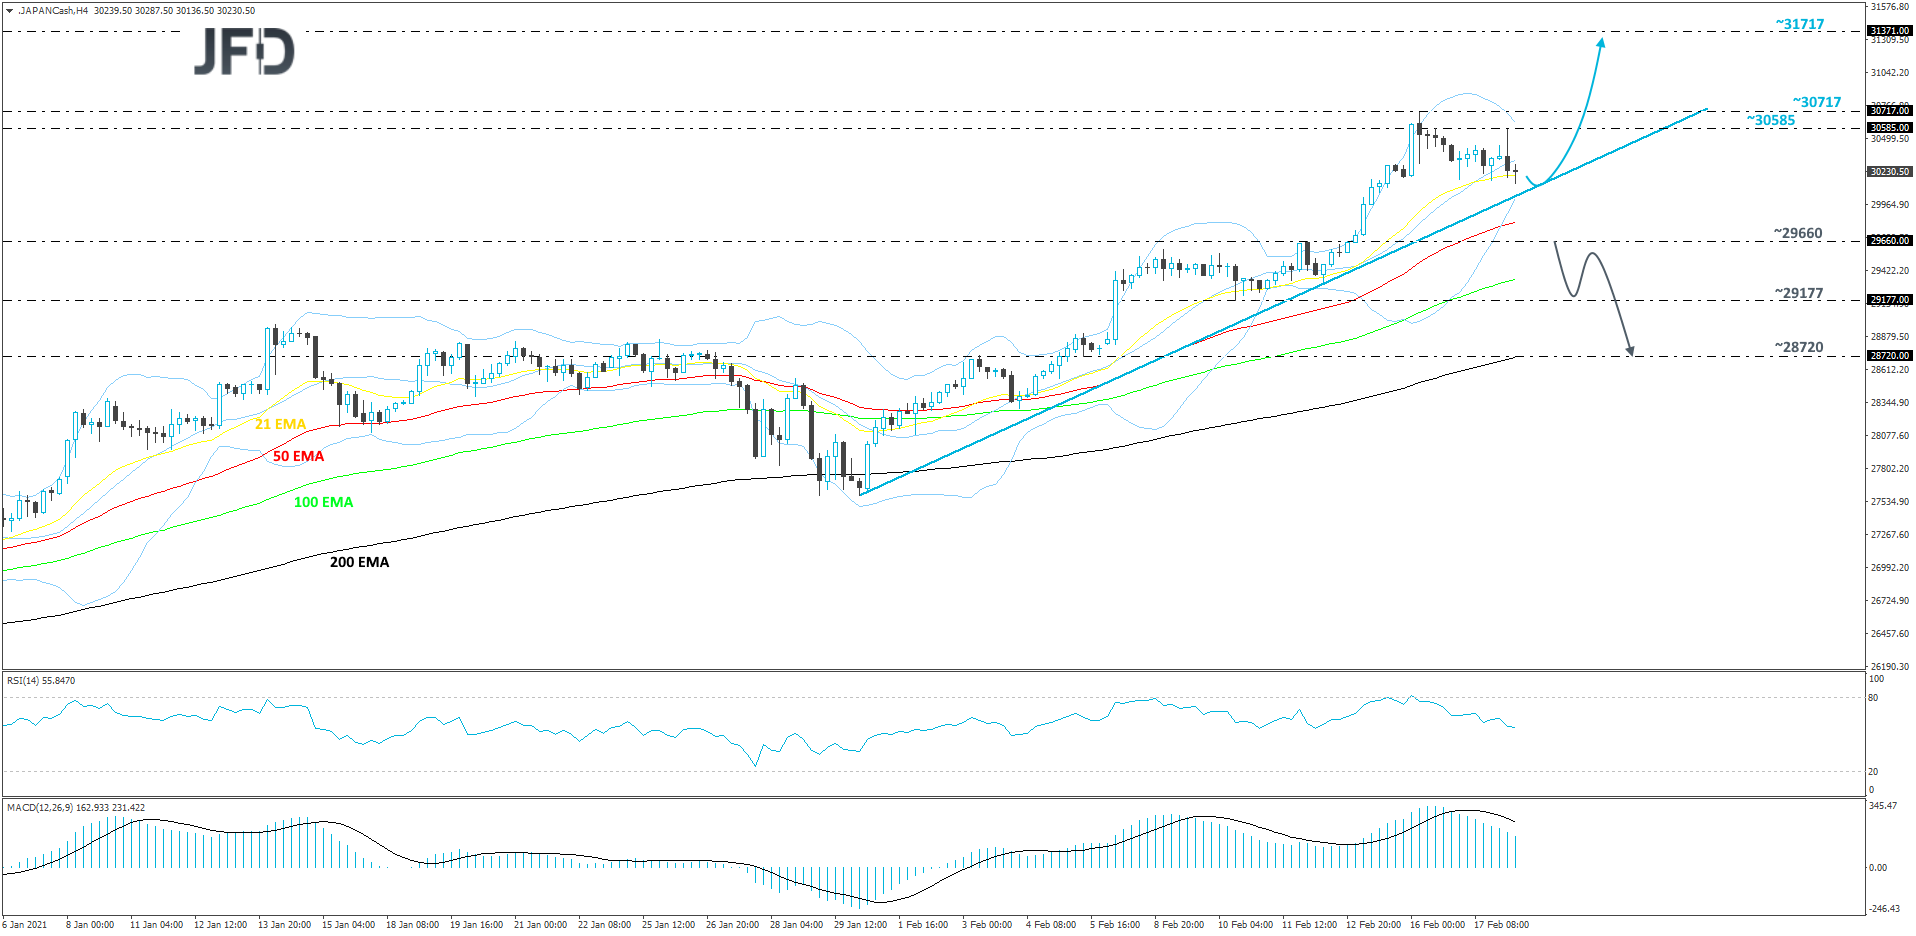 Japan's Nikkei 225 4-hour chart technical analysis